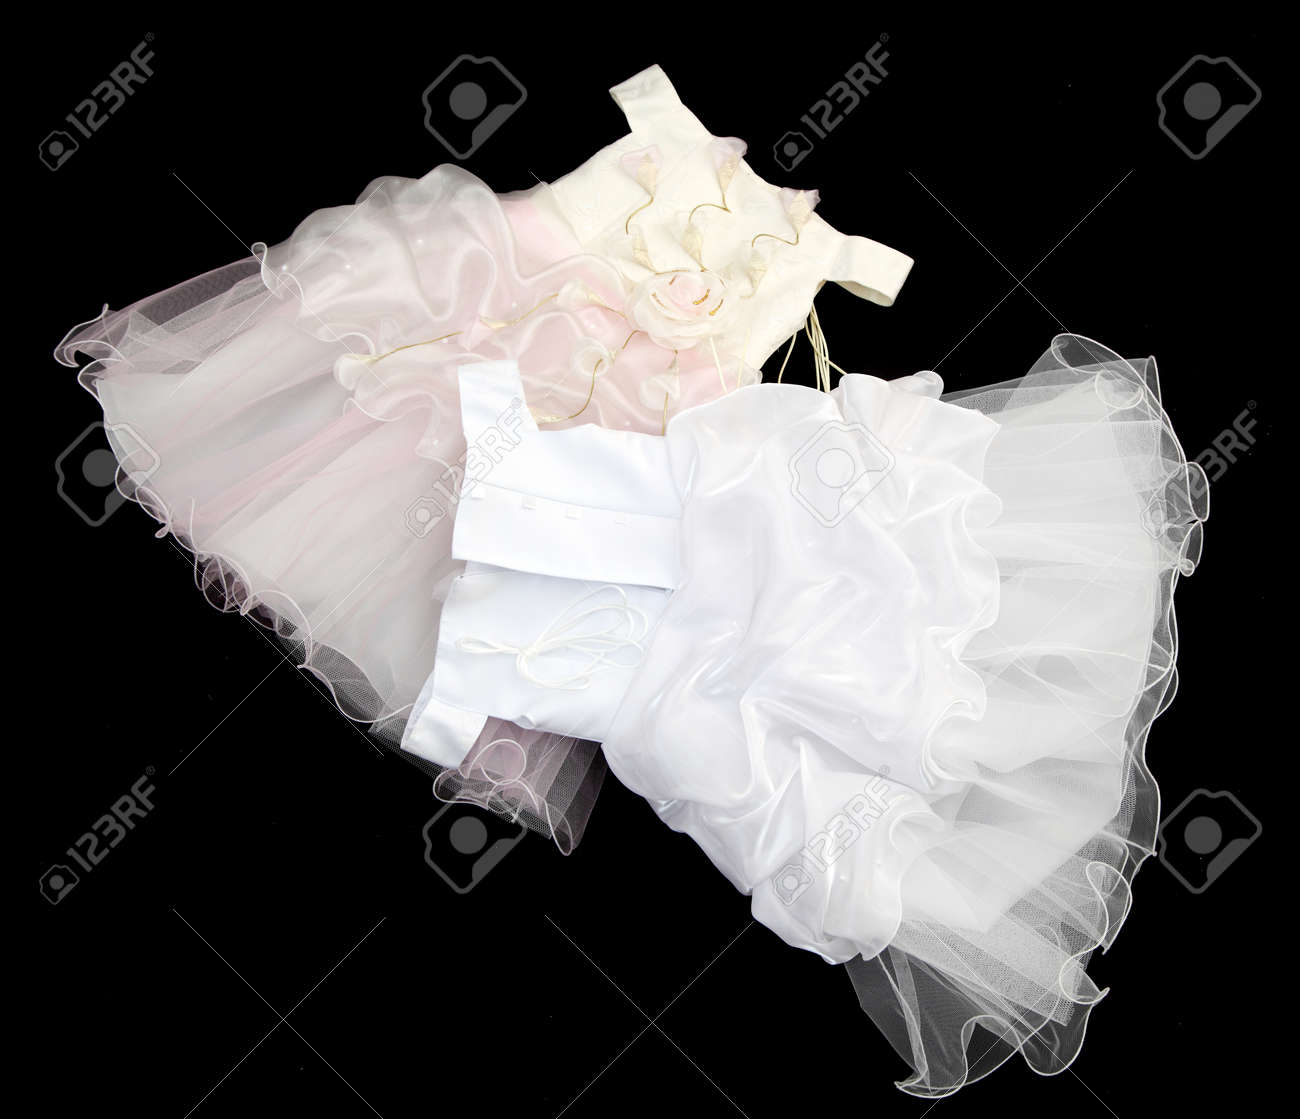 Baby Kleid Weiß Stock Photo